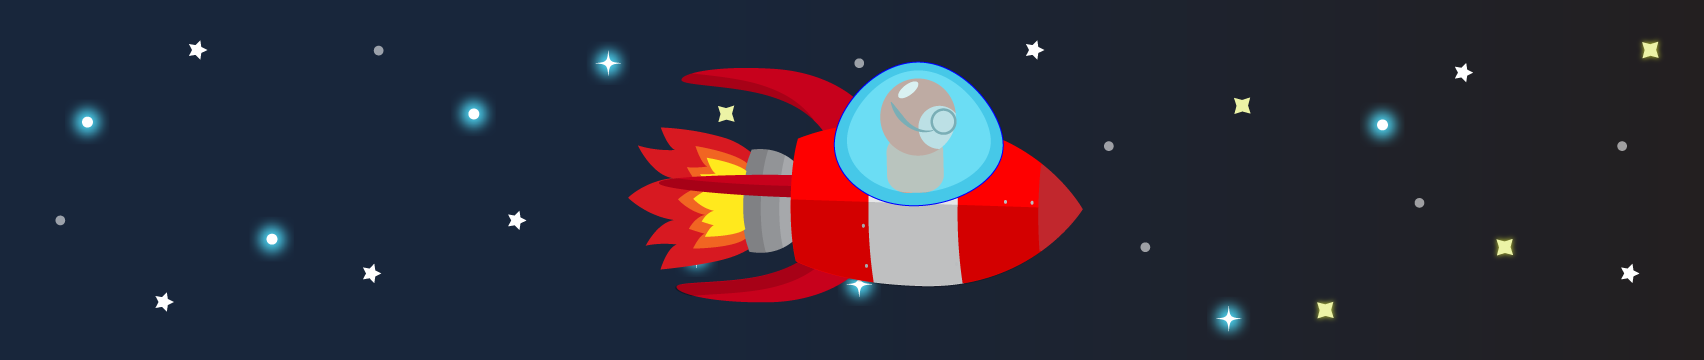 spaceflappy-banner